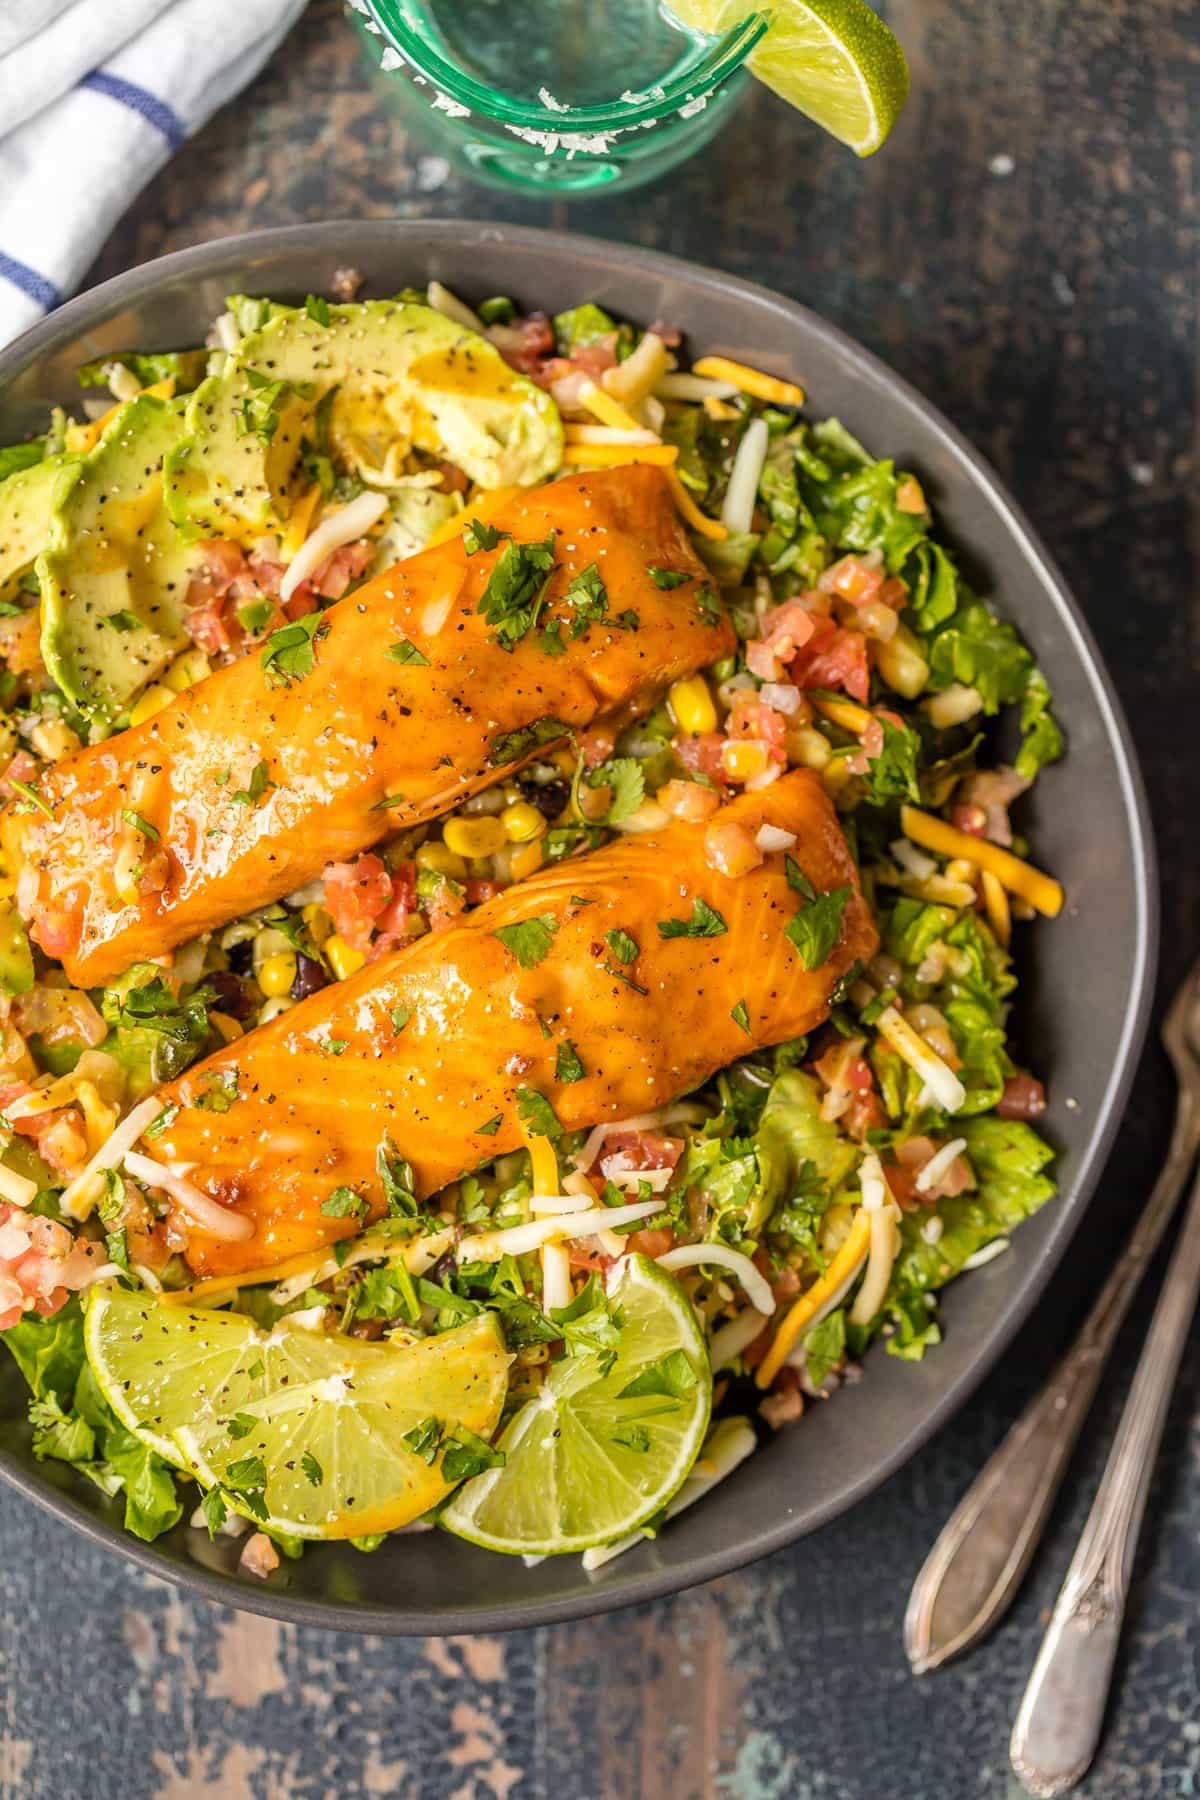 Large salad filled with avocado, lettuce, corn, black beans and topped with tequila lime salmon